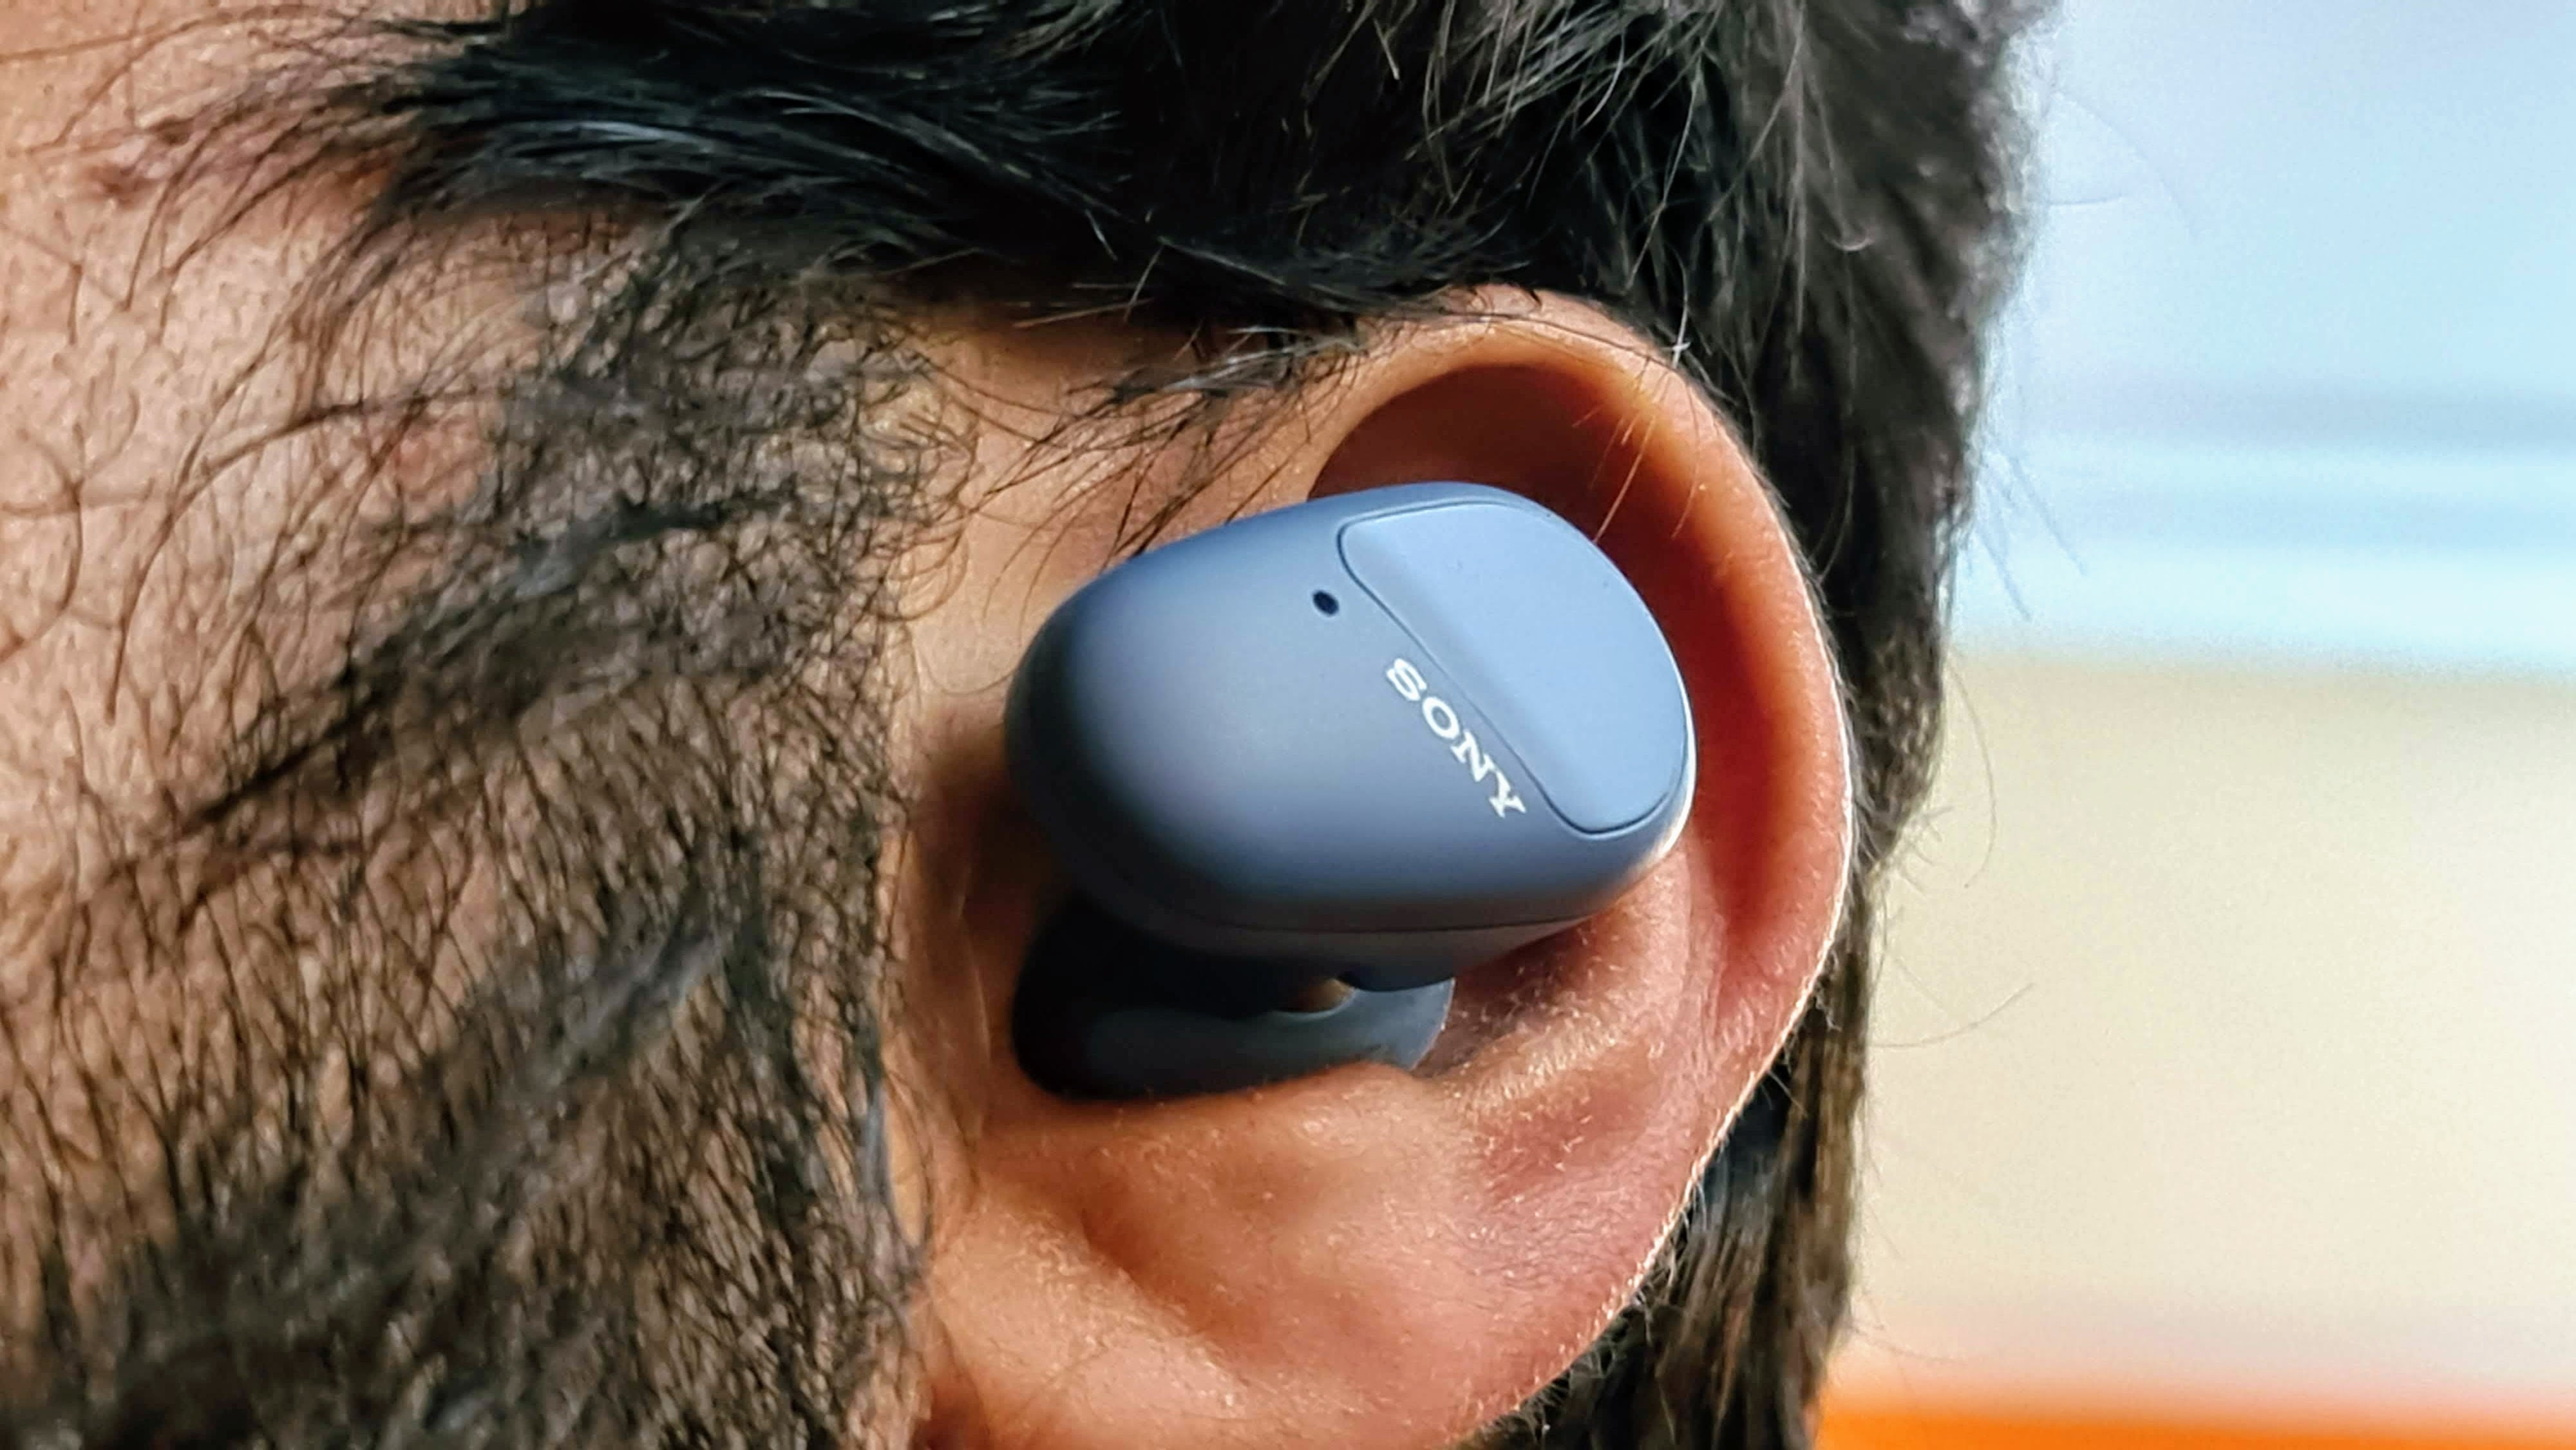 These are made specifically for those who have an active lifestyle and want the best of Sony's wireless earbuds tech while doing sessions at the gym, jogging or performing any other activity.